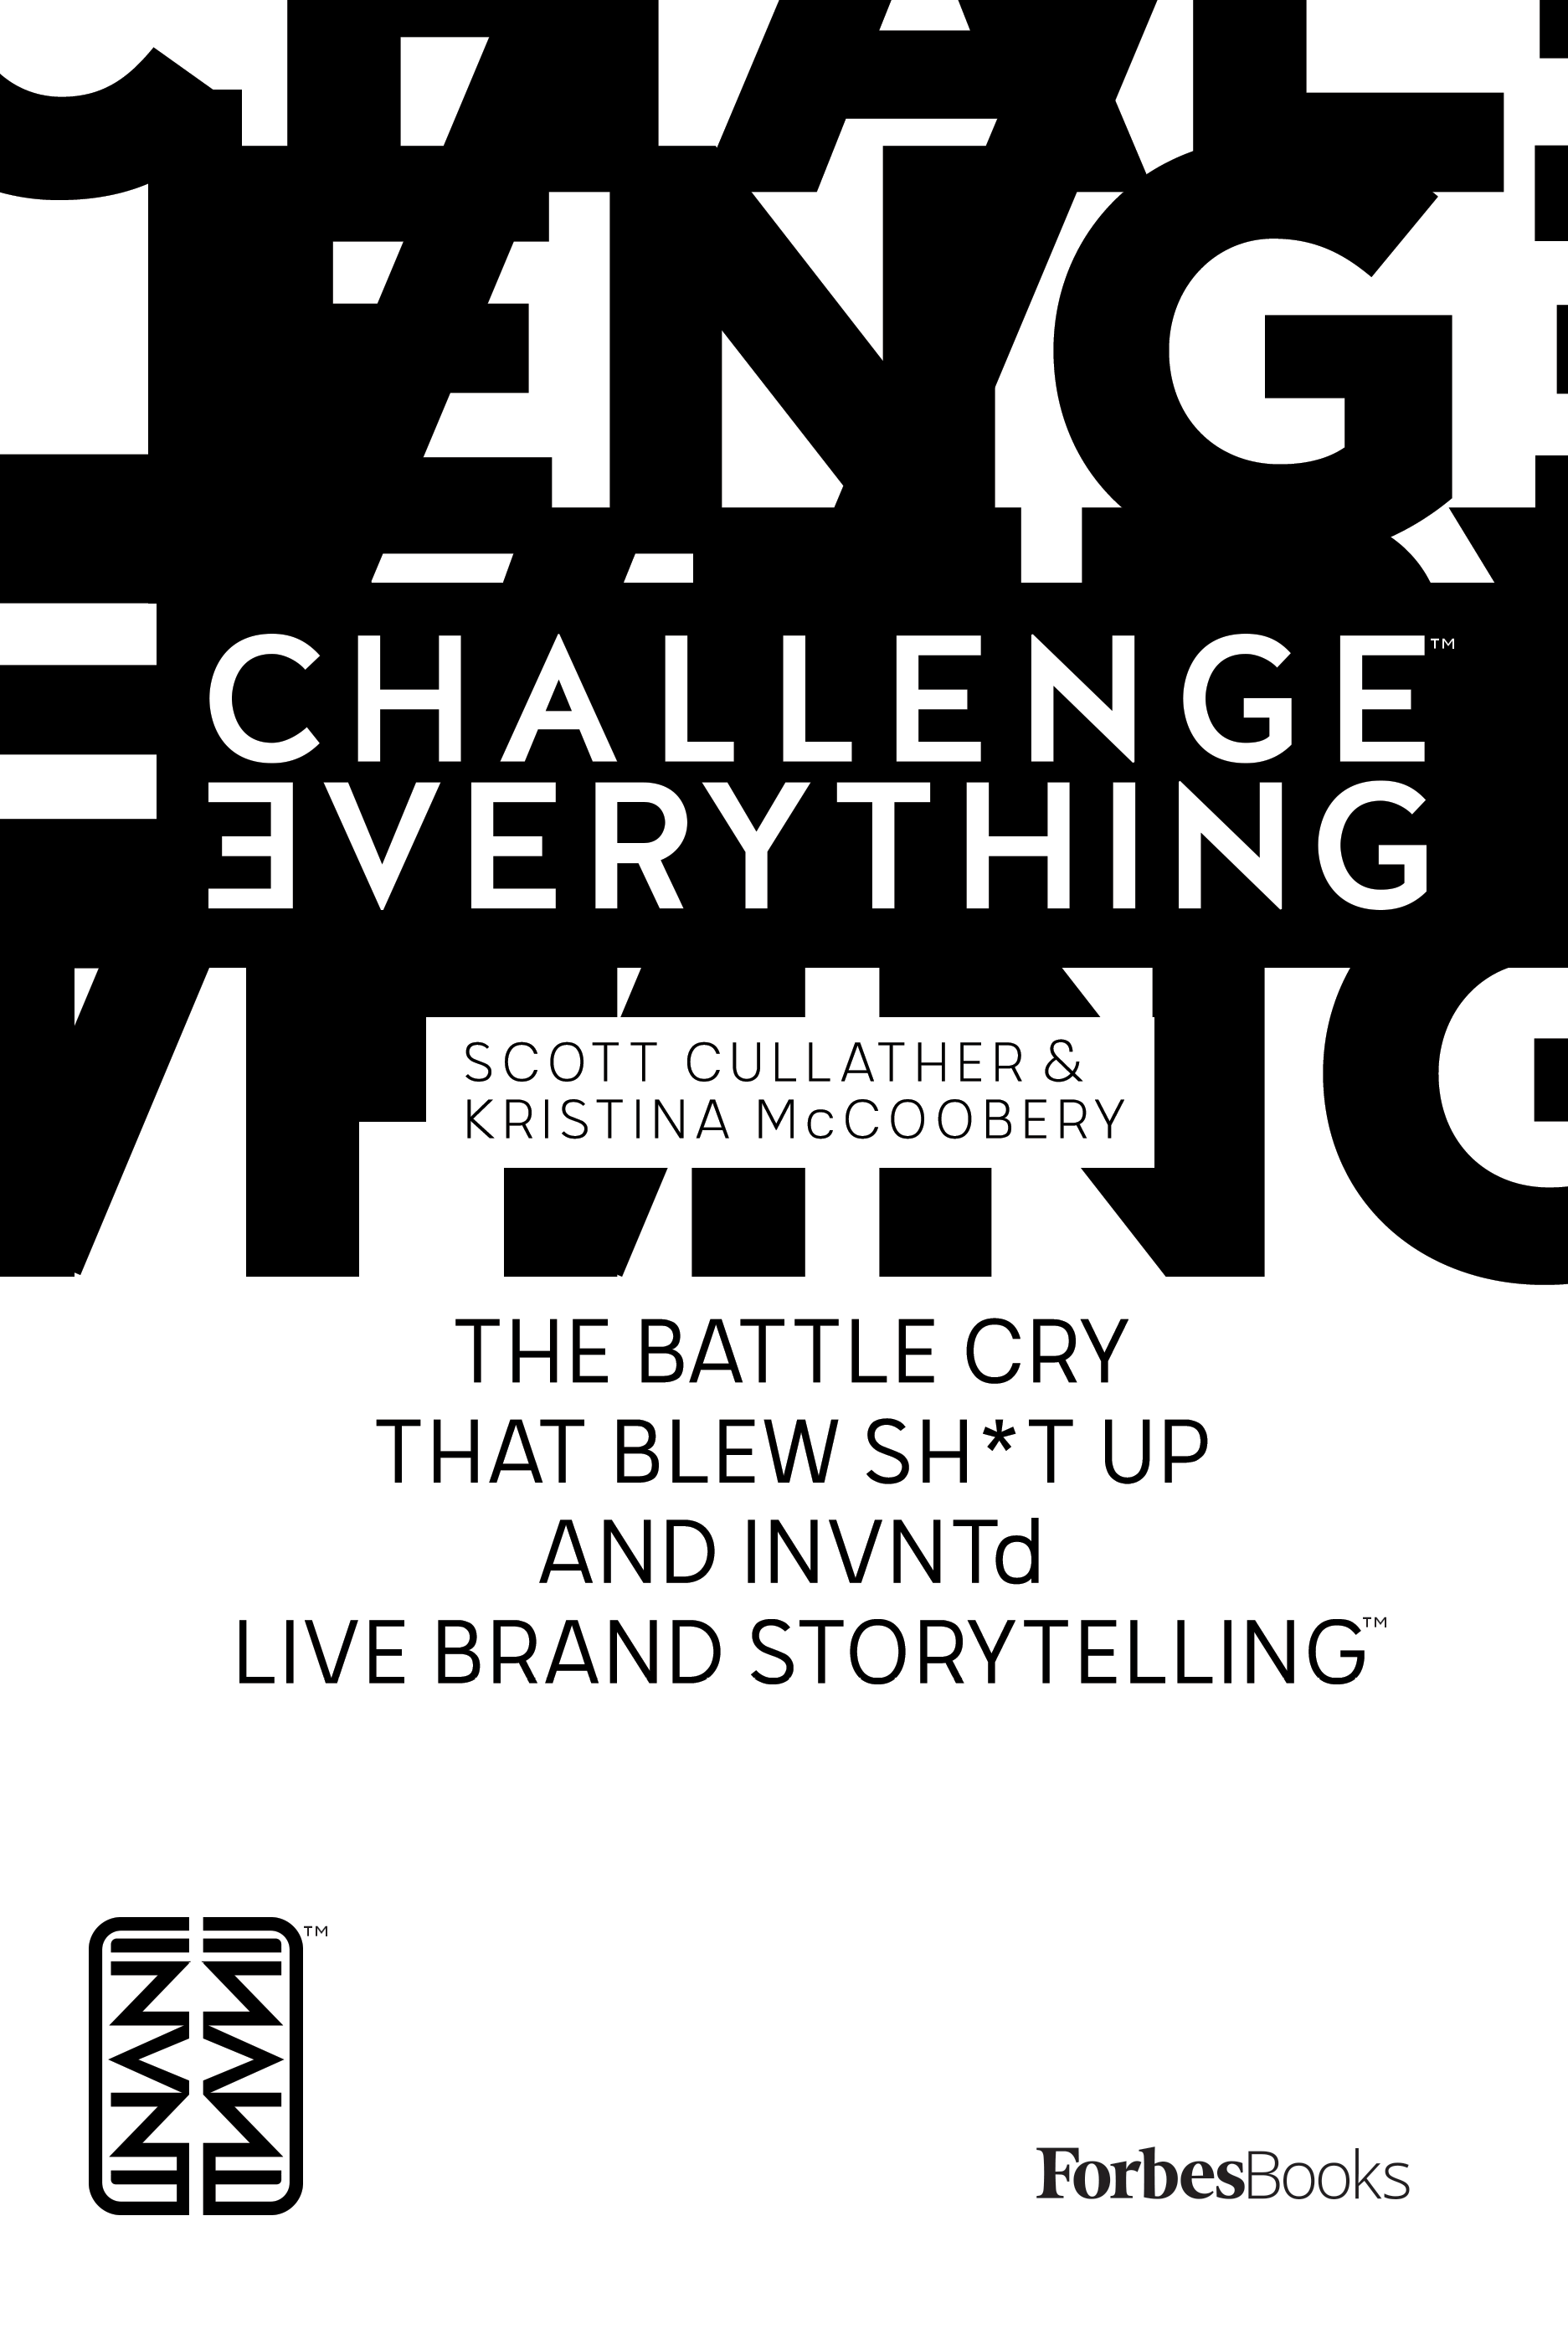 Challenge Everything: The Battle Cry